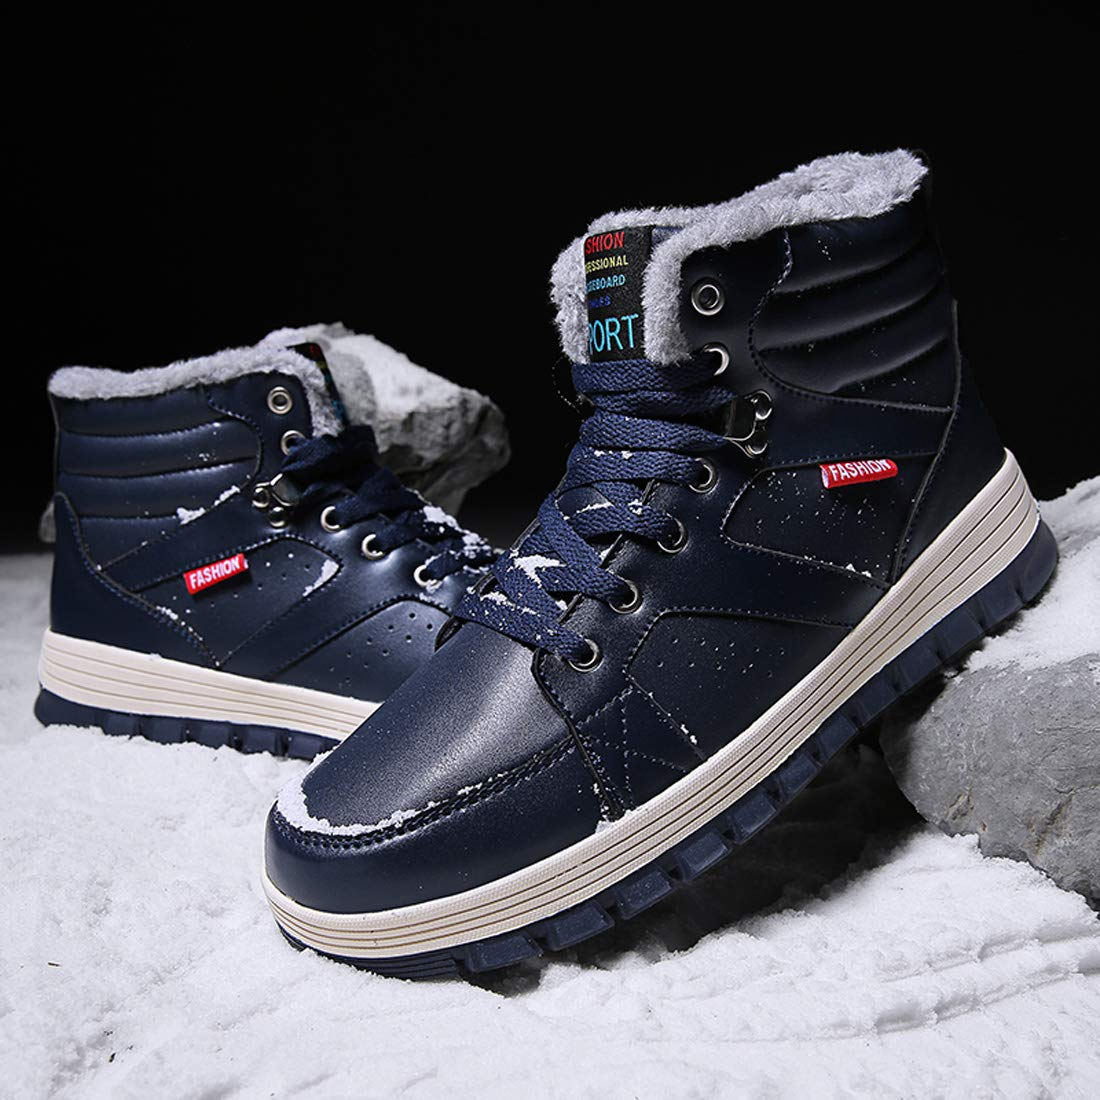 Ceyue Mens Leather Snow Boots Lace up Ankle Sneakers High Top Winter Warm Walking Shoes with Fur Lining(Blue 43) by Ceyue (Image #4)